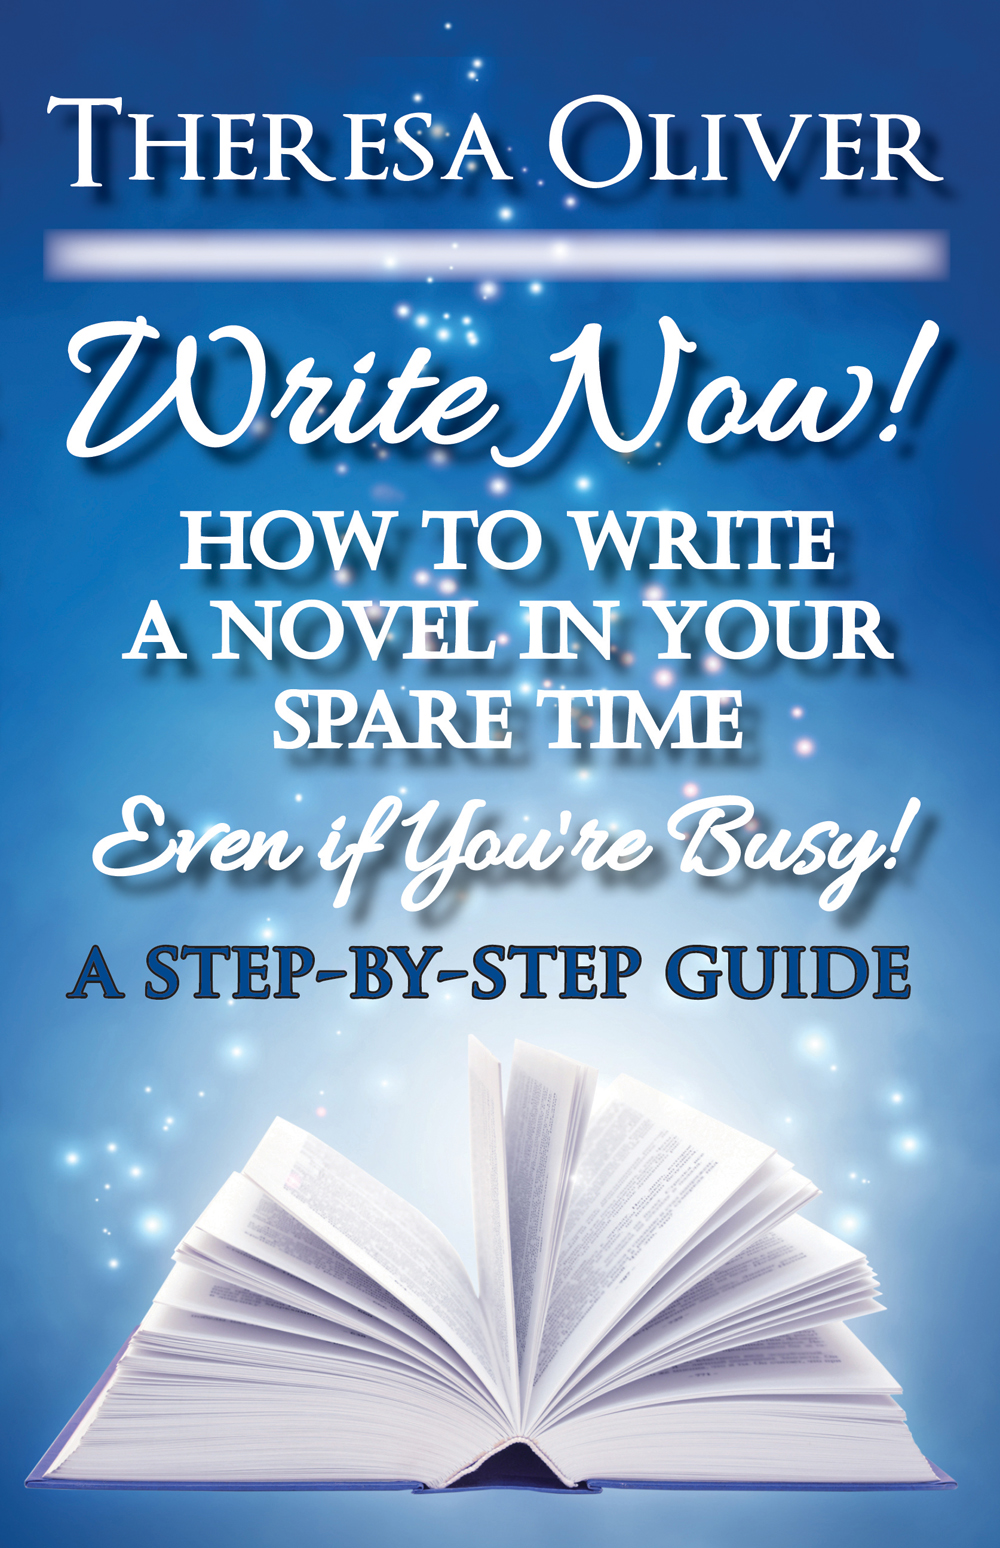 Write Now! How to Write a Novel in Your Spare Time, Even if You're Busy!